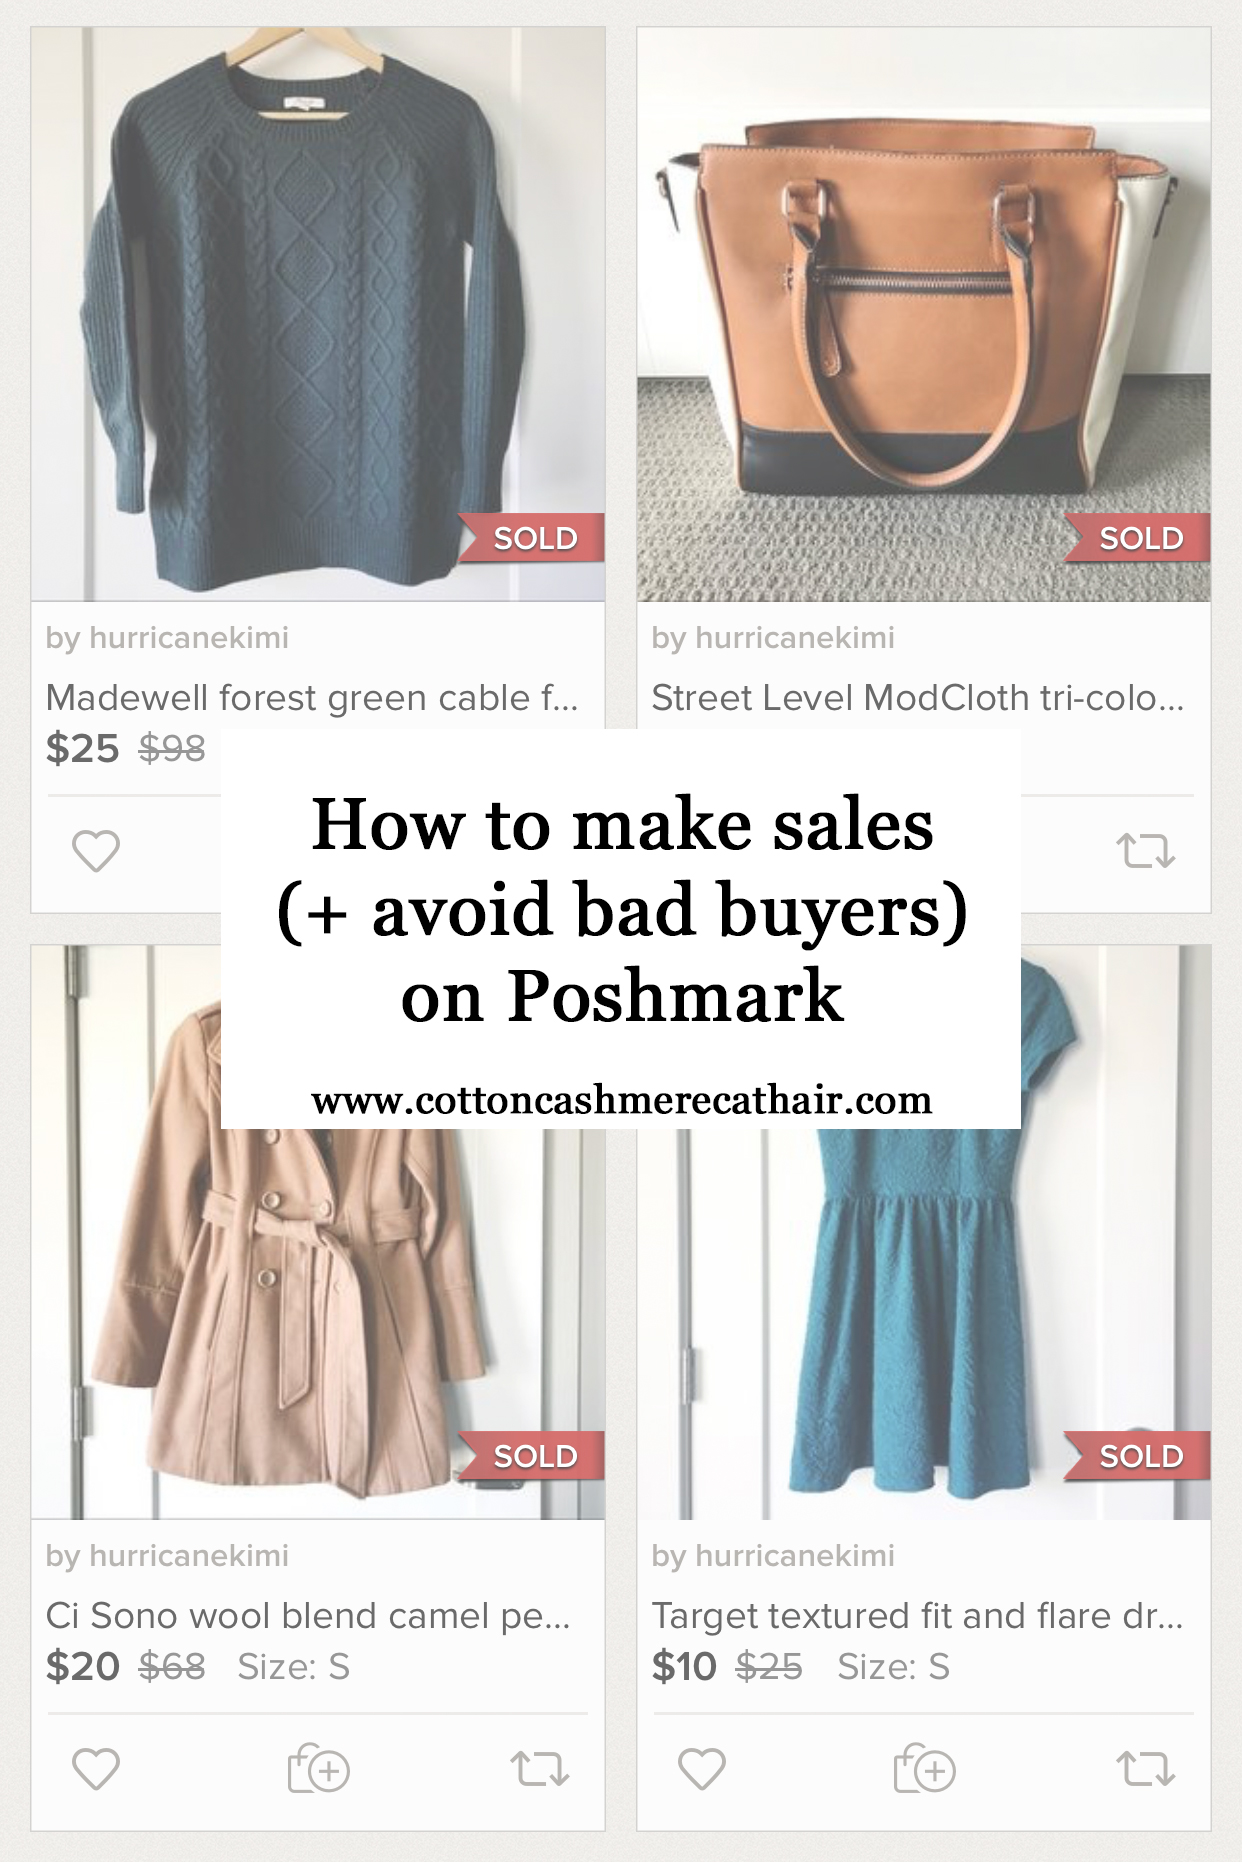 Tips for making sales and avoiding bad buyers on Poshmark — Cotton Cashmere Cat Hair